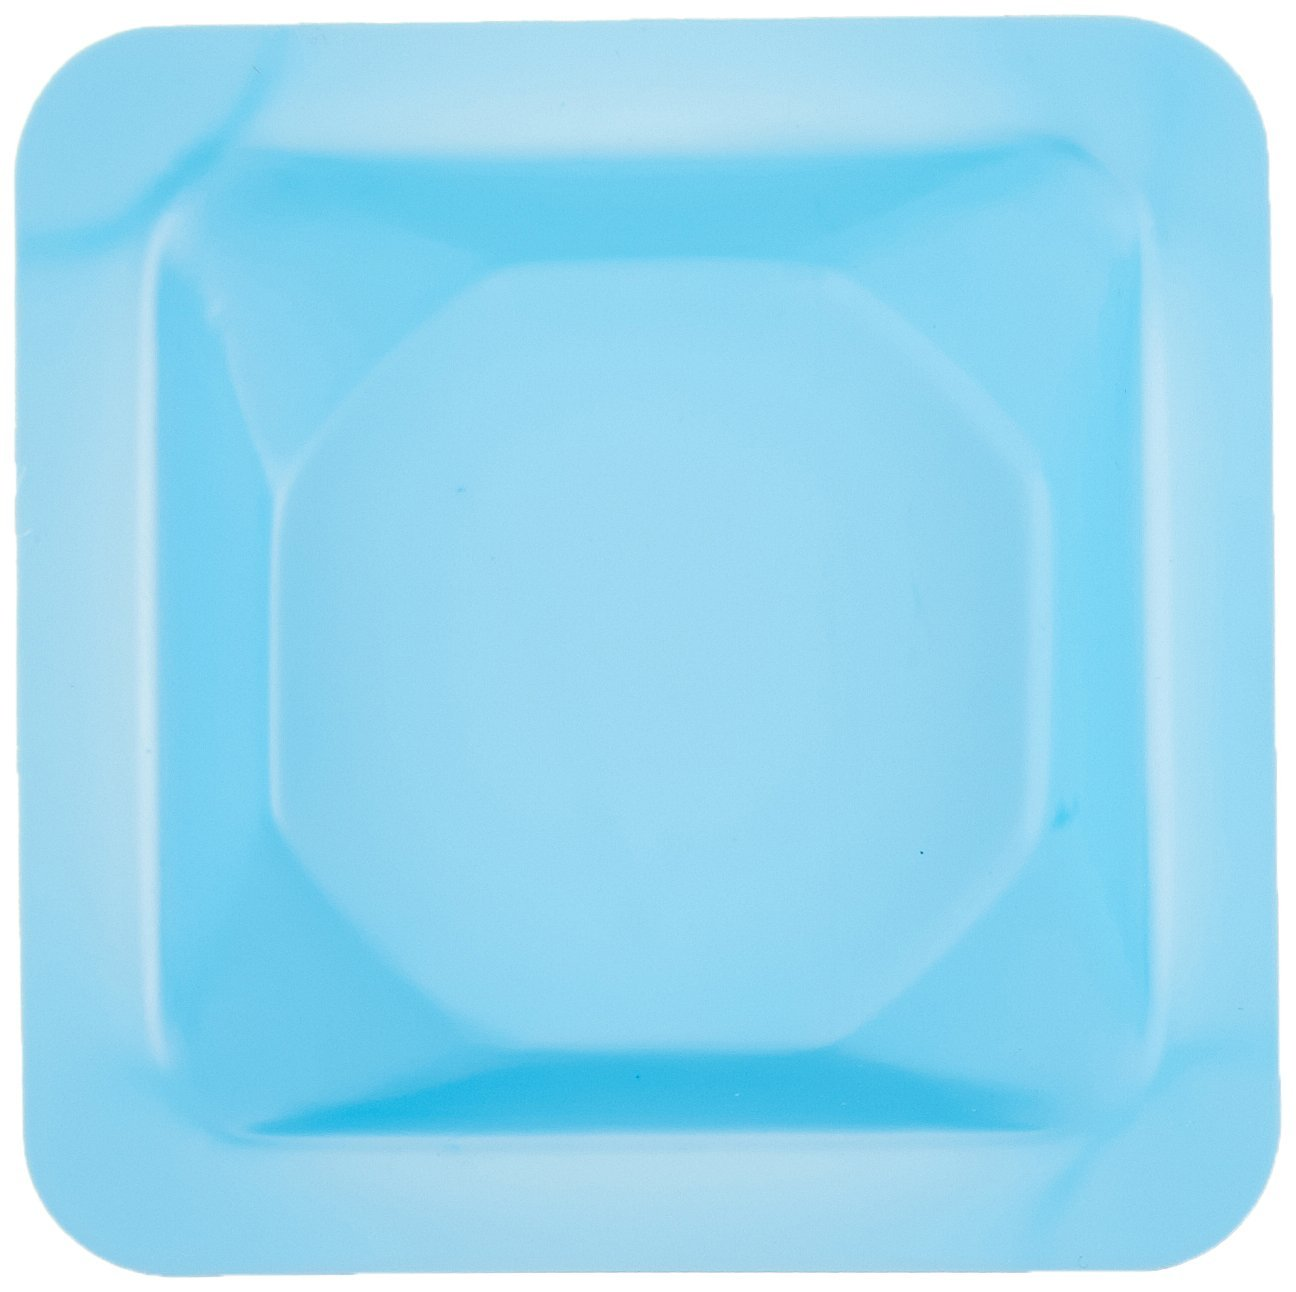 Heathrow Scientific HS120222 Weigh Boat, Anti-Static, Square, Small, Blue (Pack of 500) by Heathrow Scientific (Image #2)